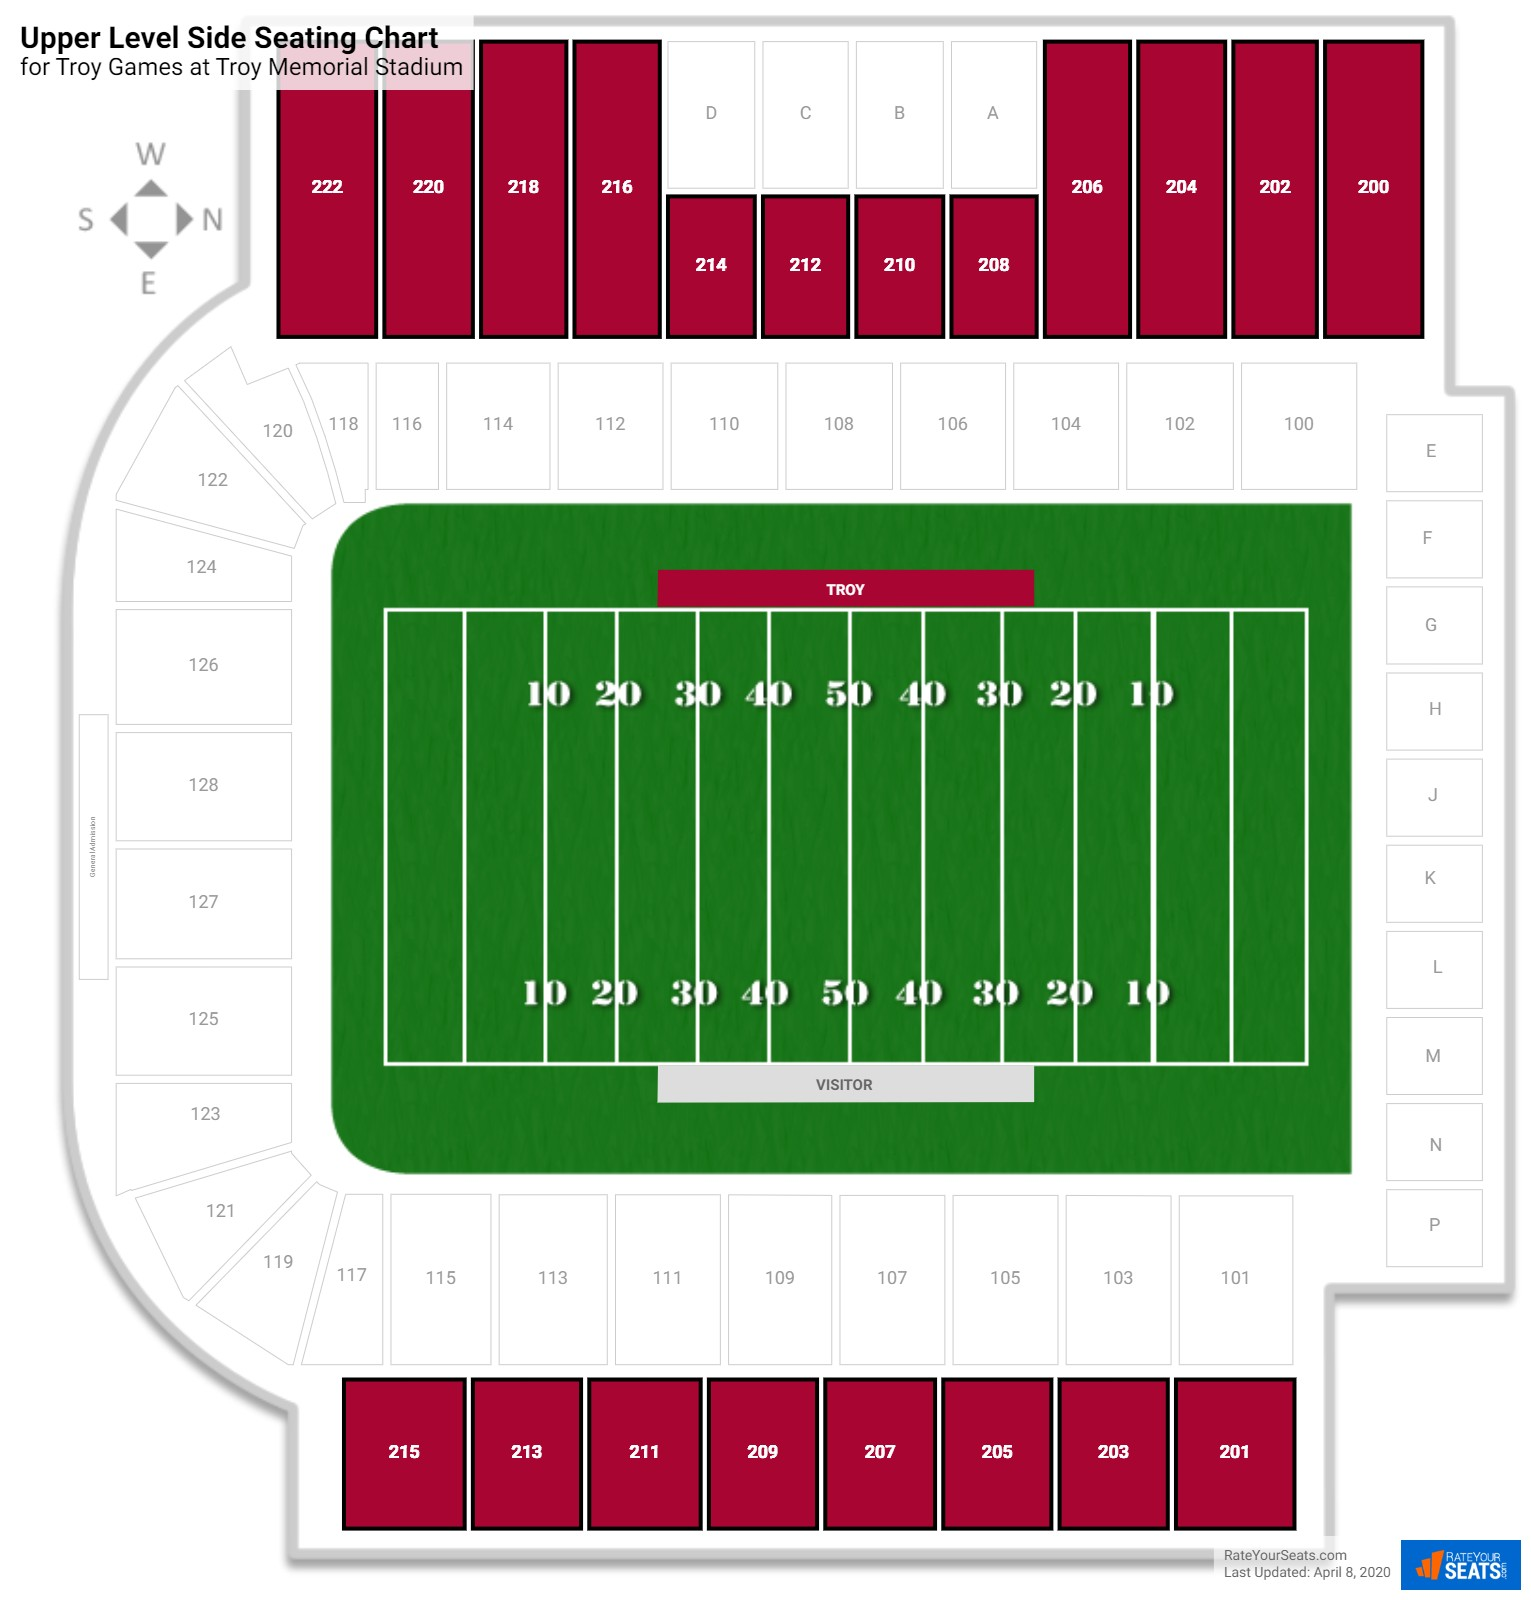 Troy Memorial Stadium Upper Level Side seating chart